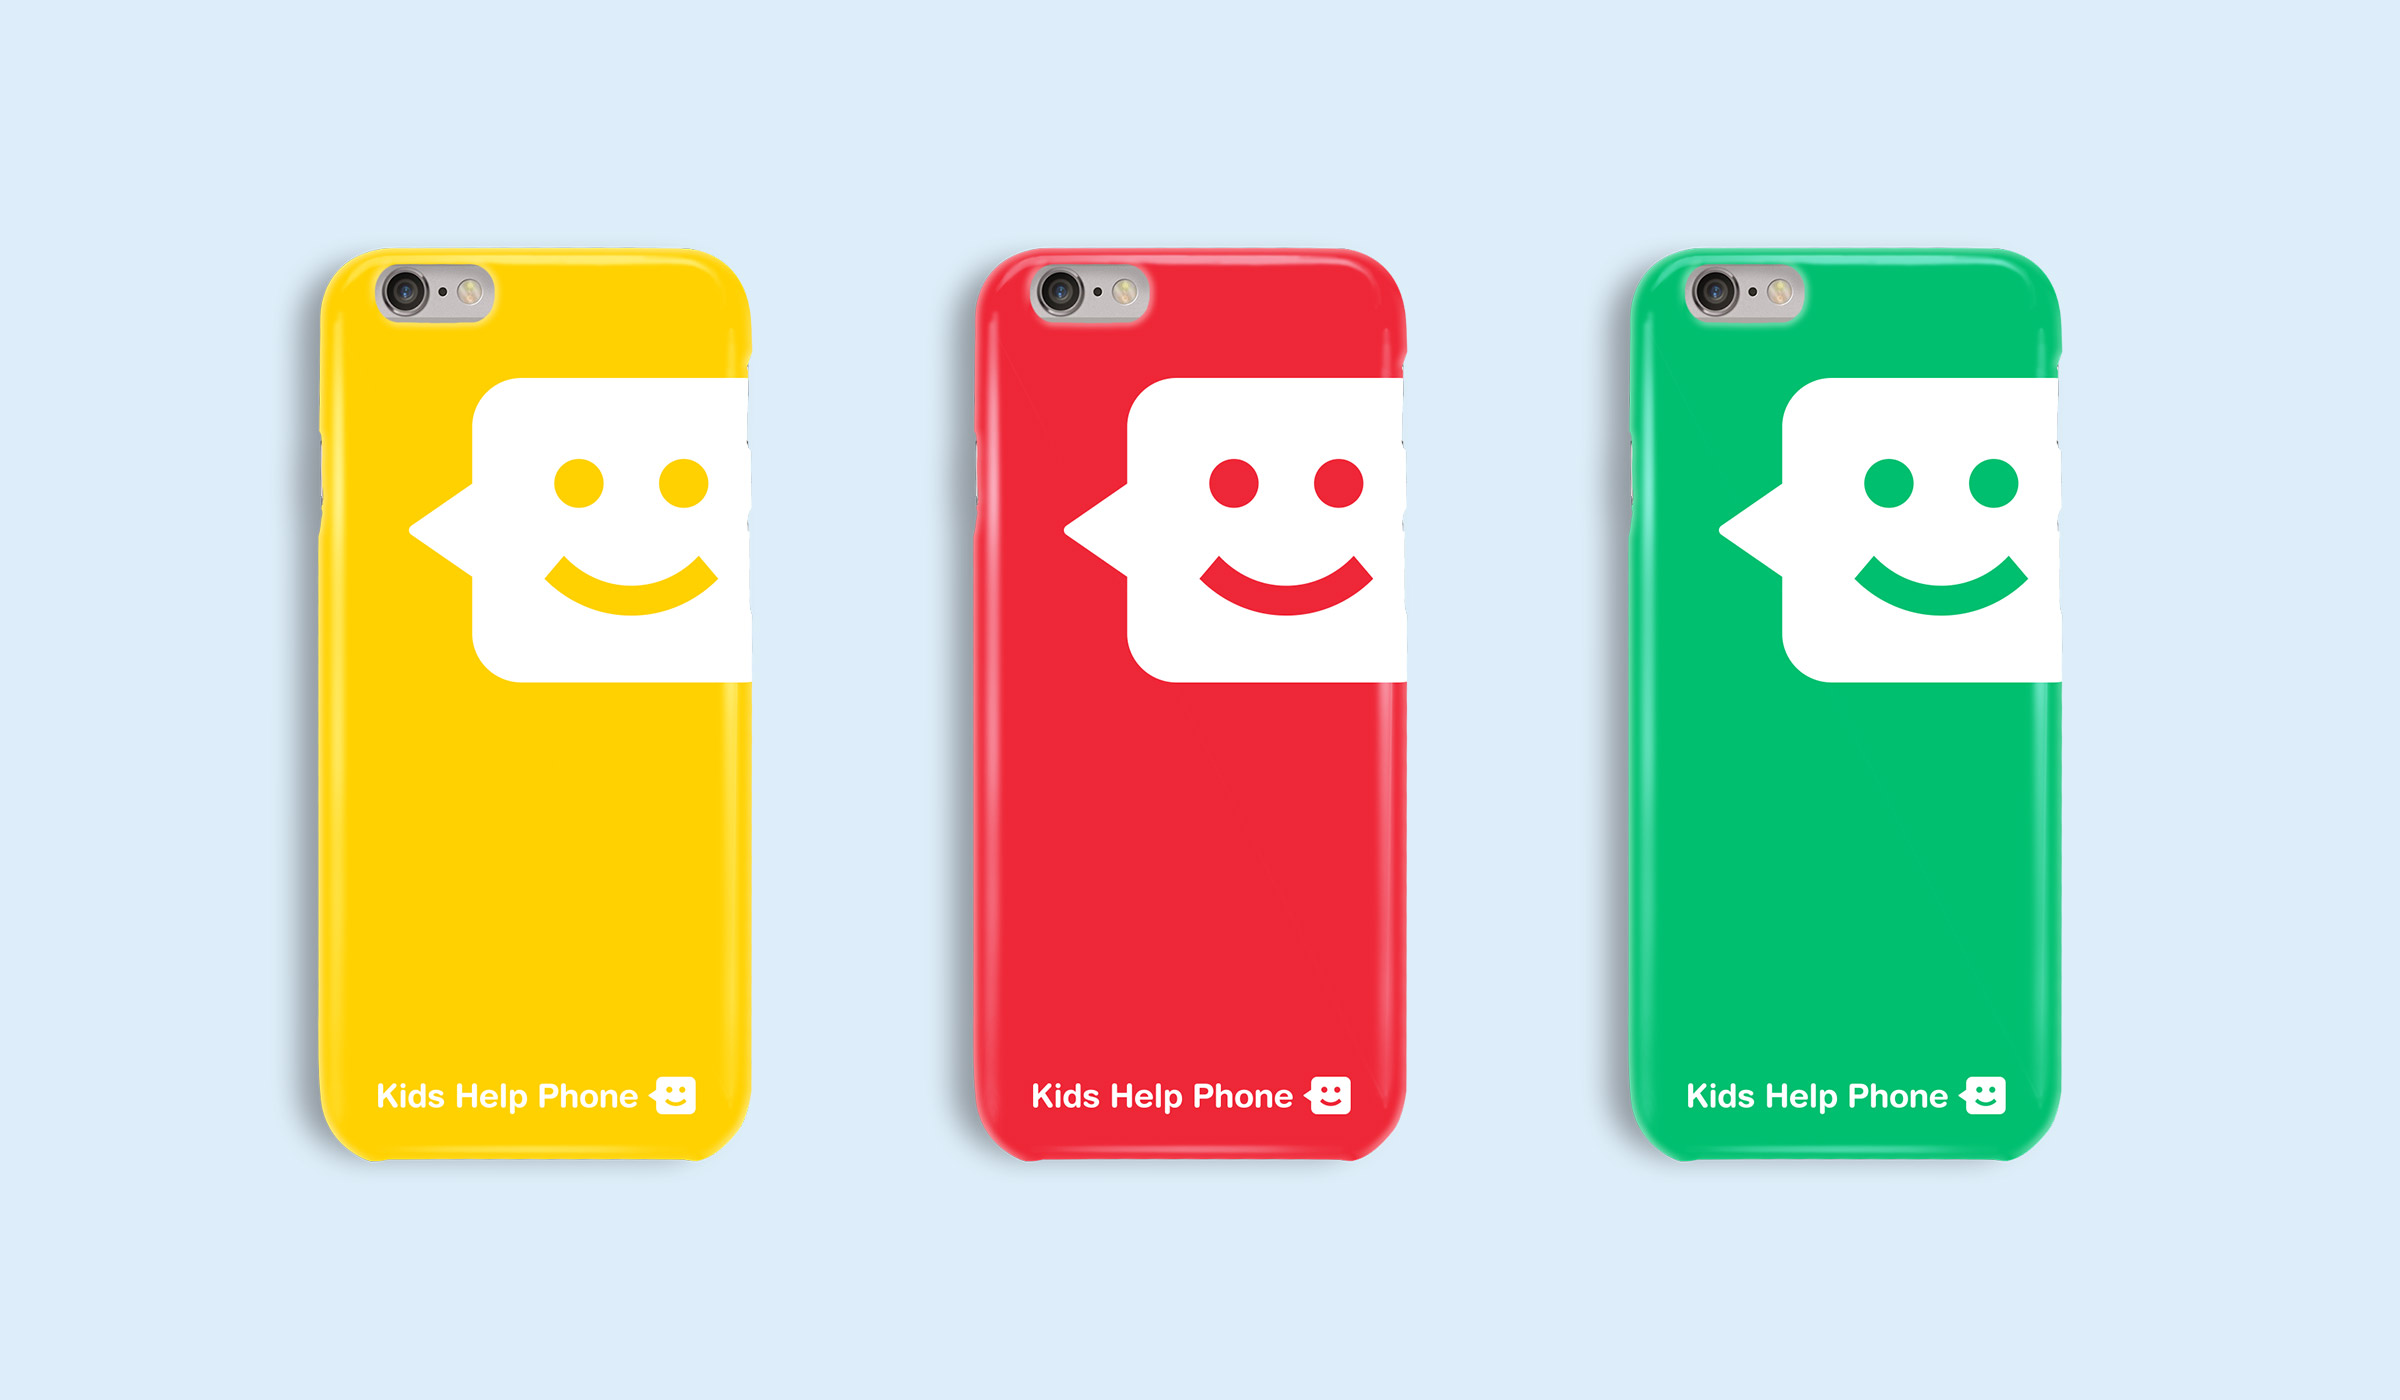 Phone cases with Kids Help Phone branding